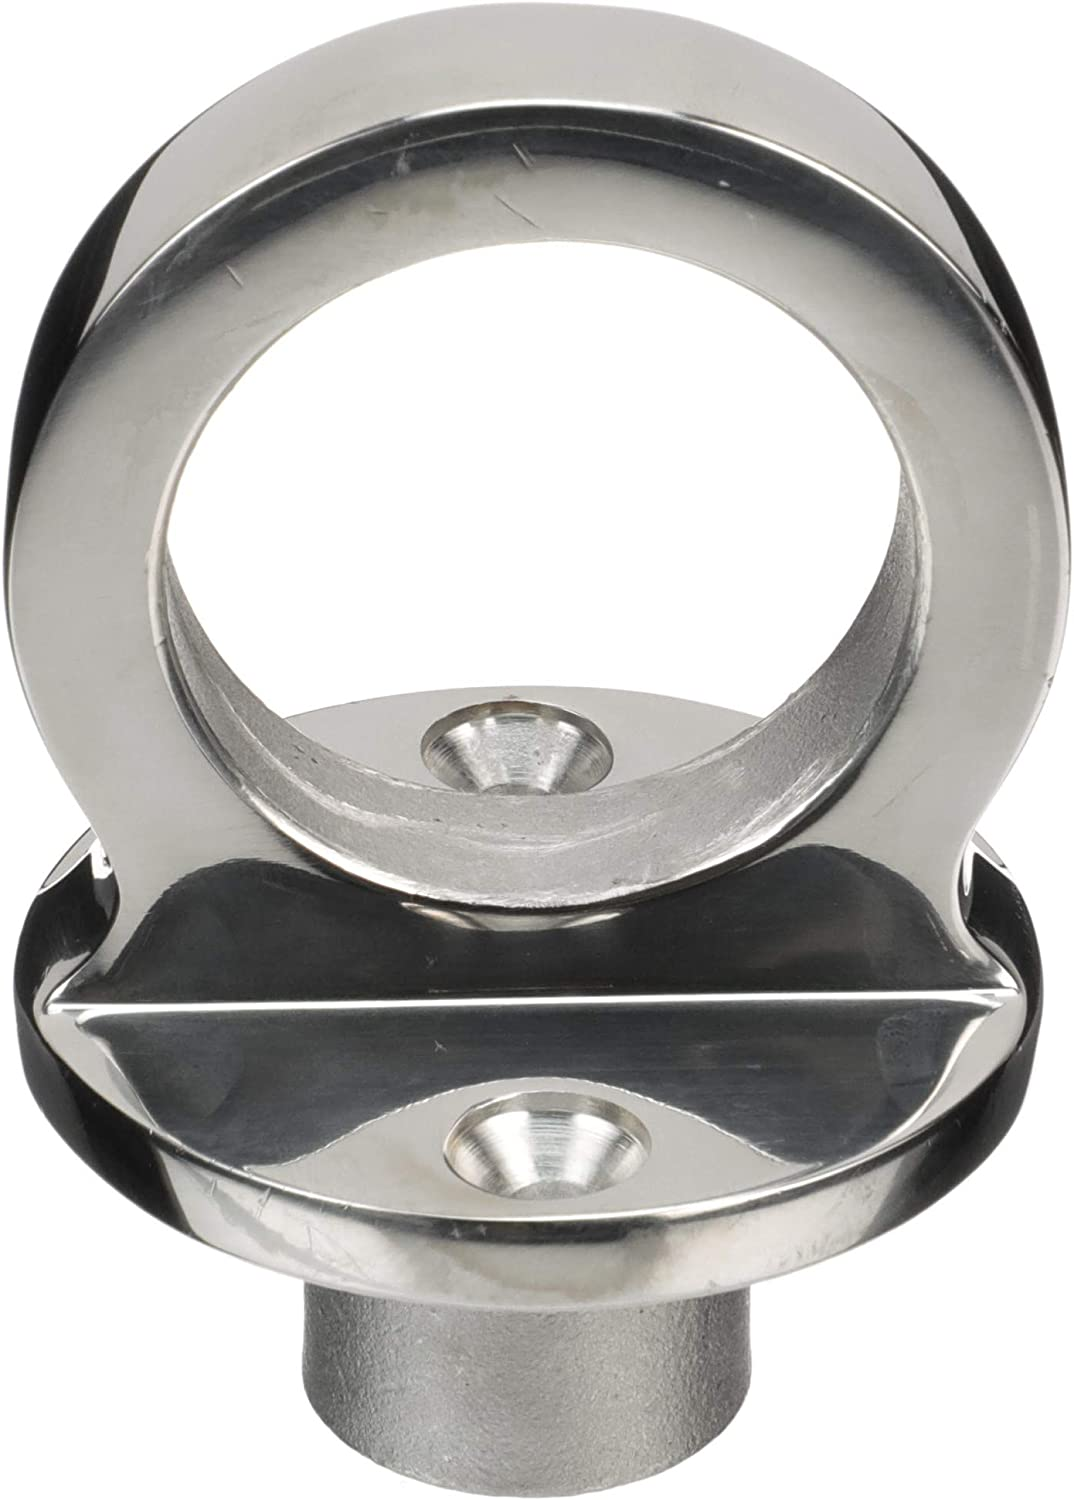 316 Stainless Steel Lifting Eye with Cleat for Boats